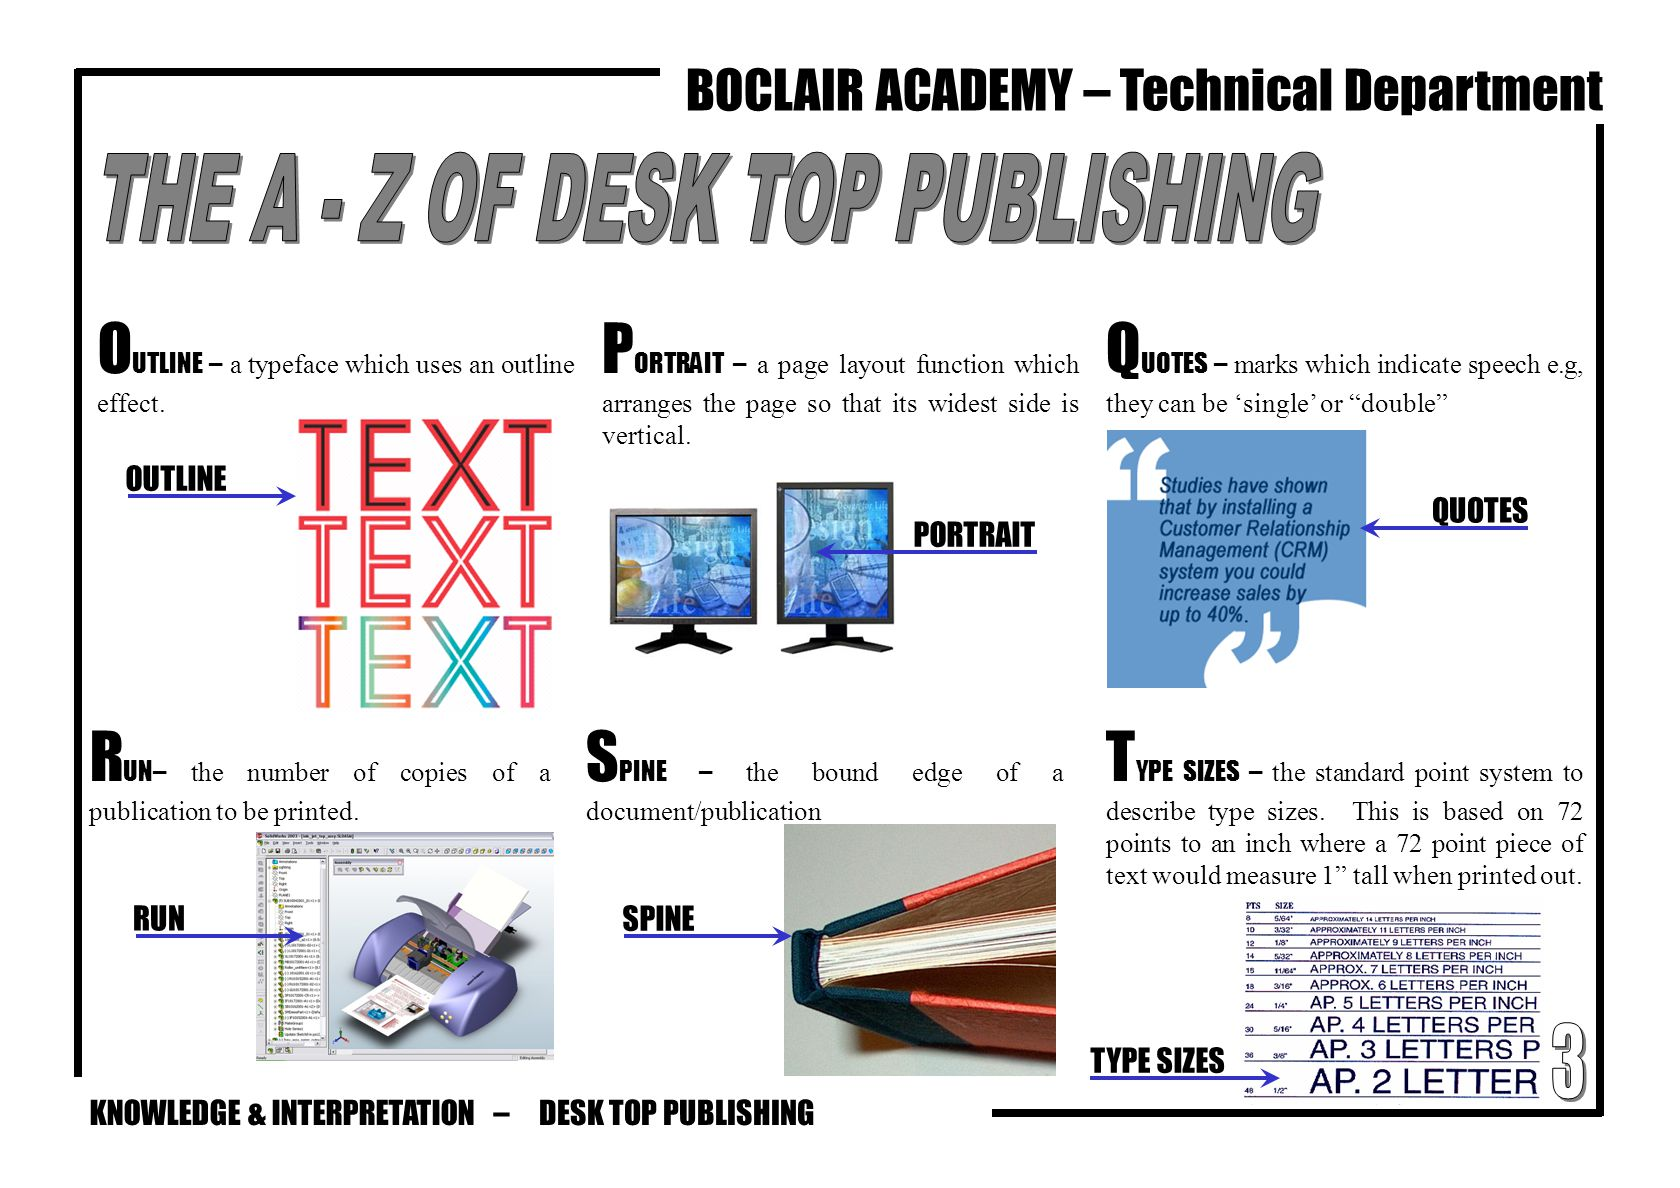 KNOWLEDGE & INTERPRETATION – BOCLAIR ACADEMY – Technical Department DESK TOP PUBLISHING O UTLINE – a typeface which uses an outline effect. P ORTRAIT